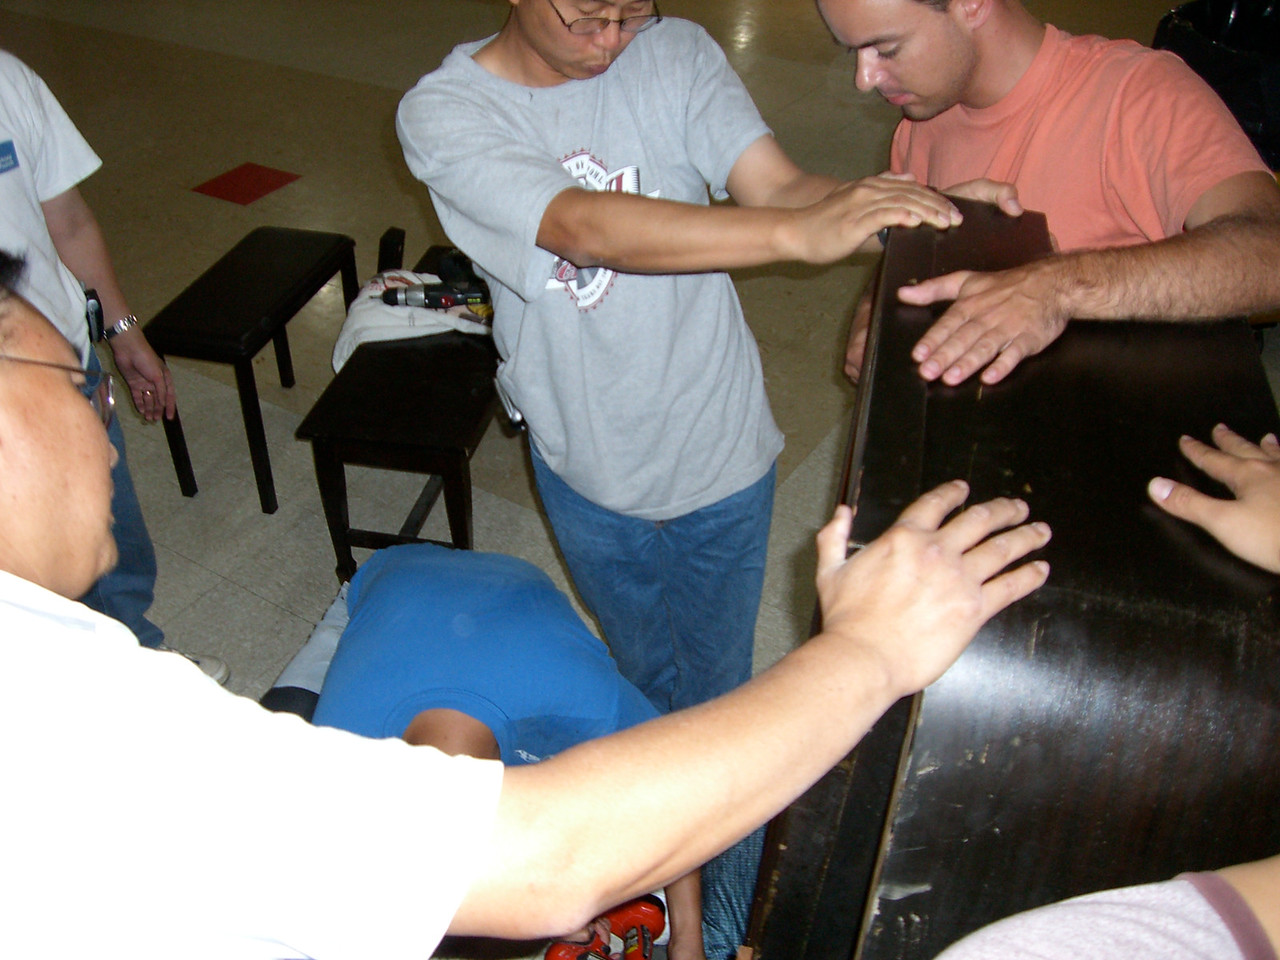 Songju prepares to carry the piano on his back